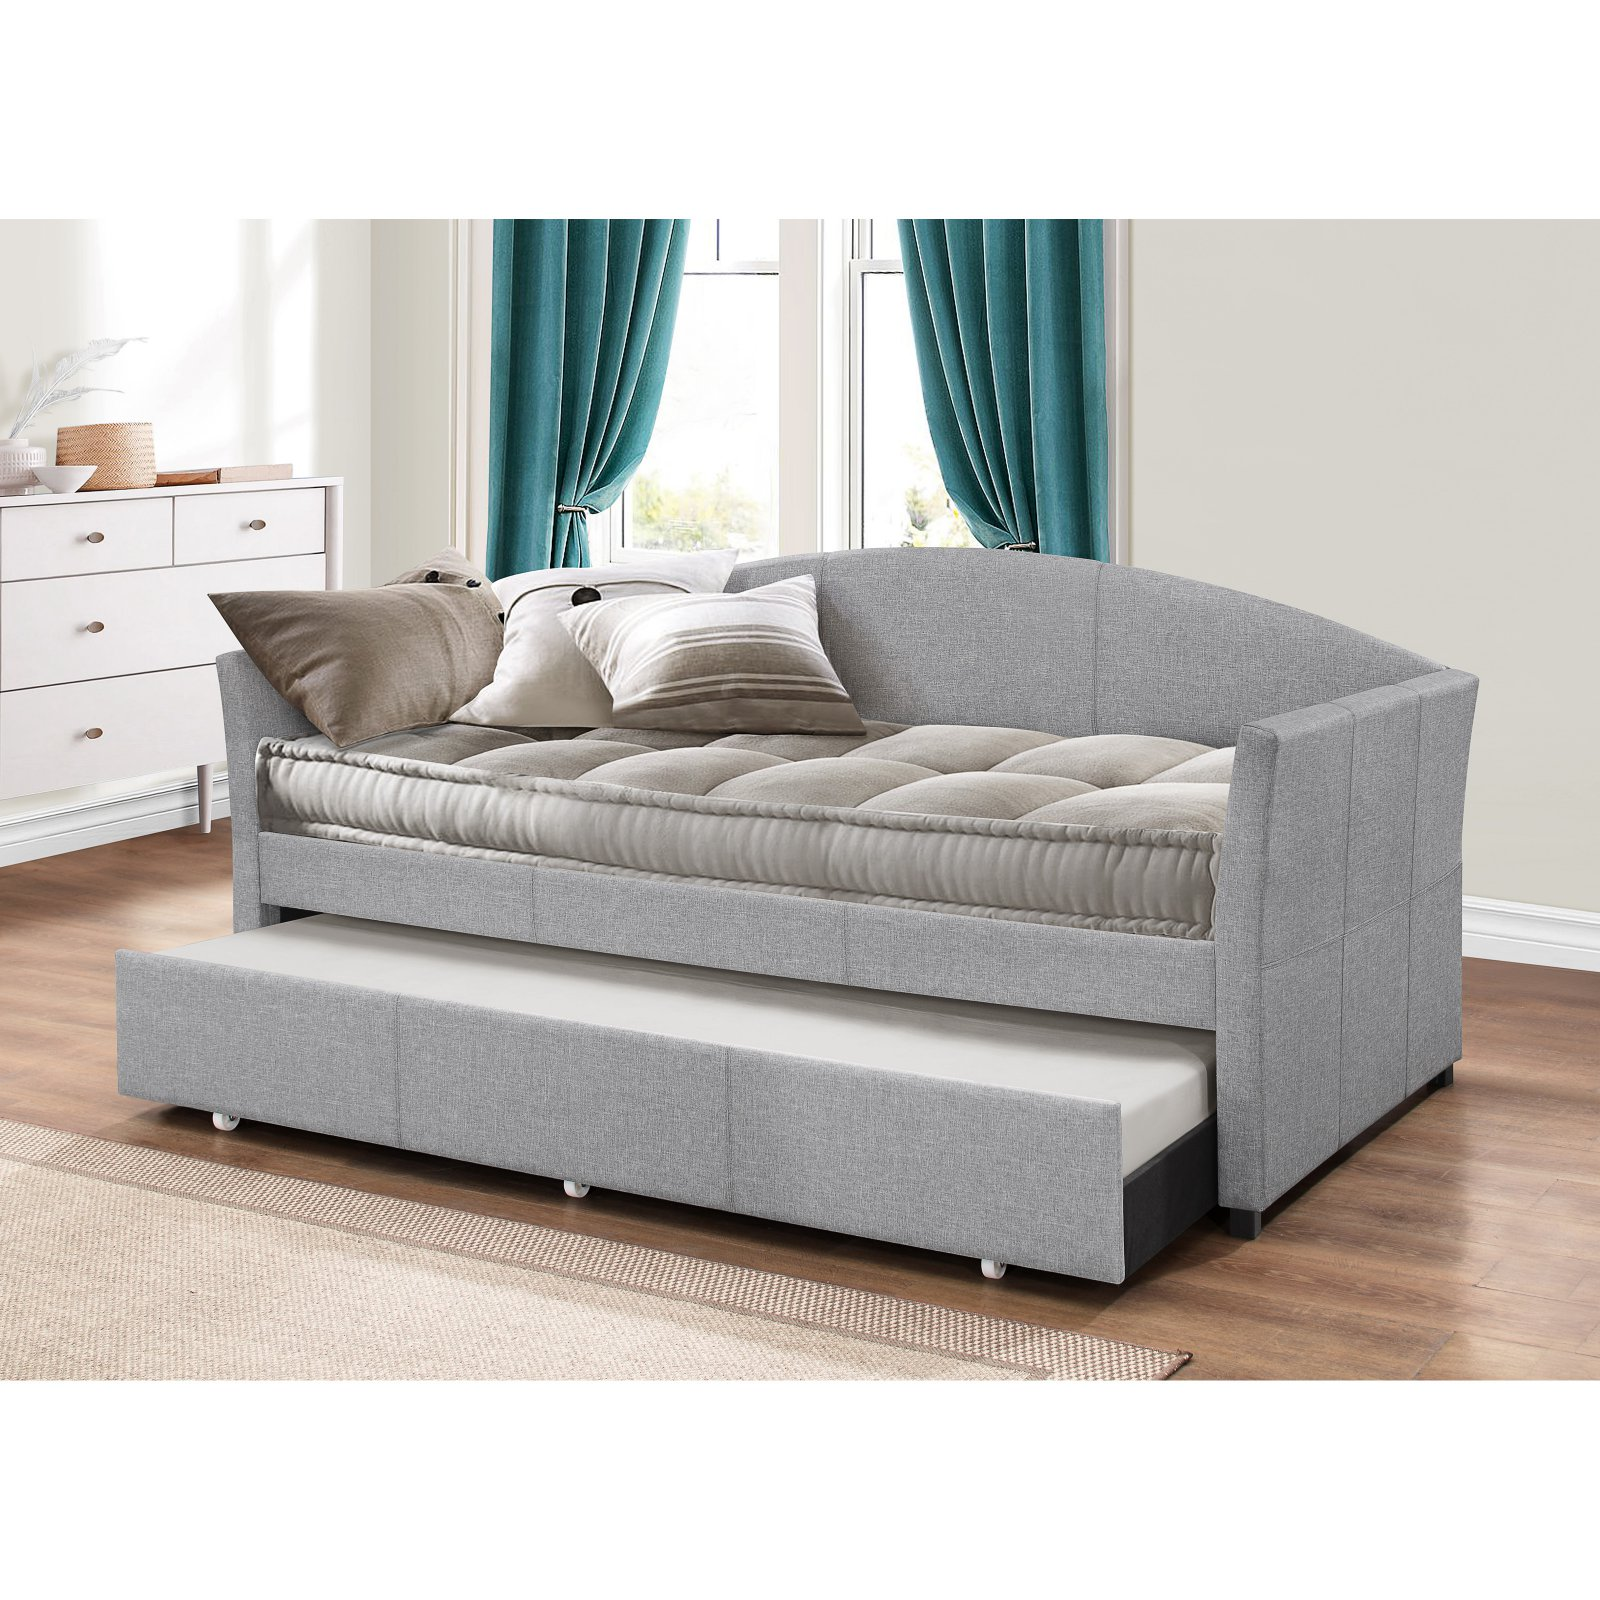 Hillsdale Furniture Westchester Daybed, Smoke Grey